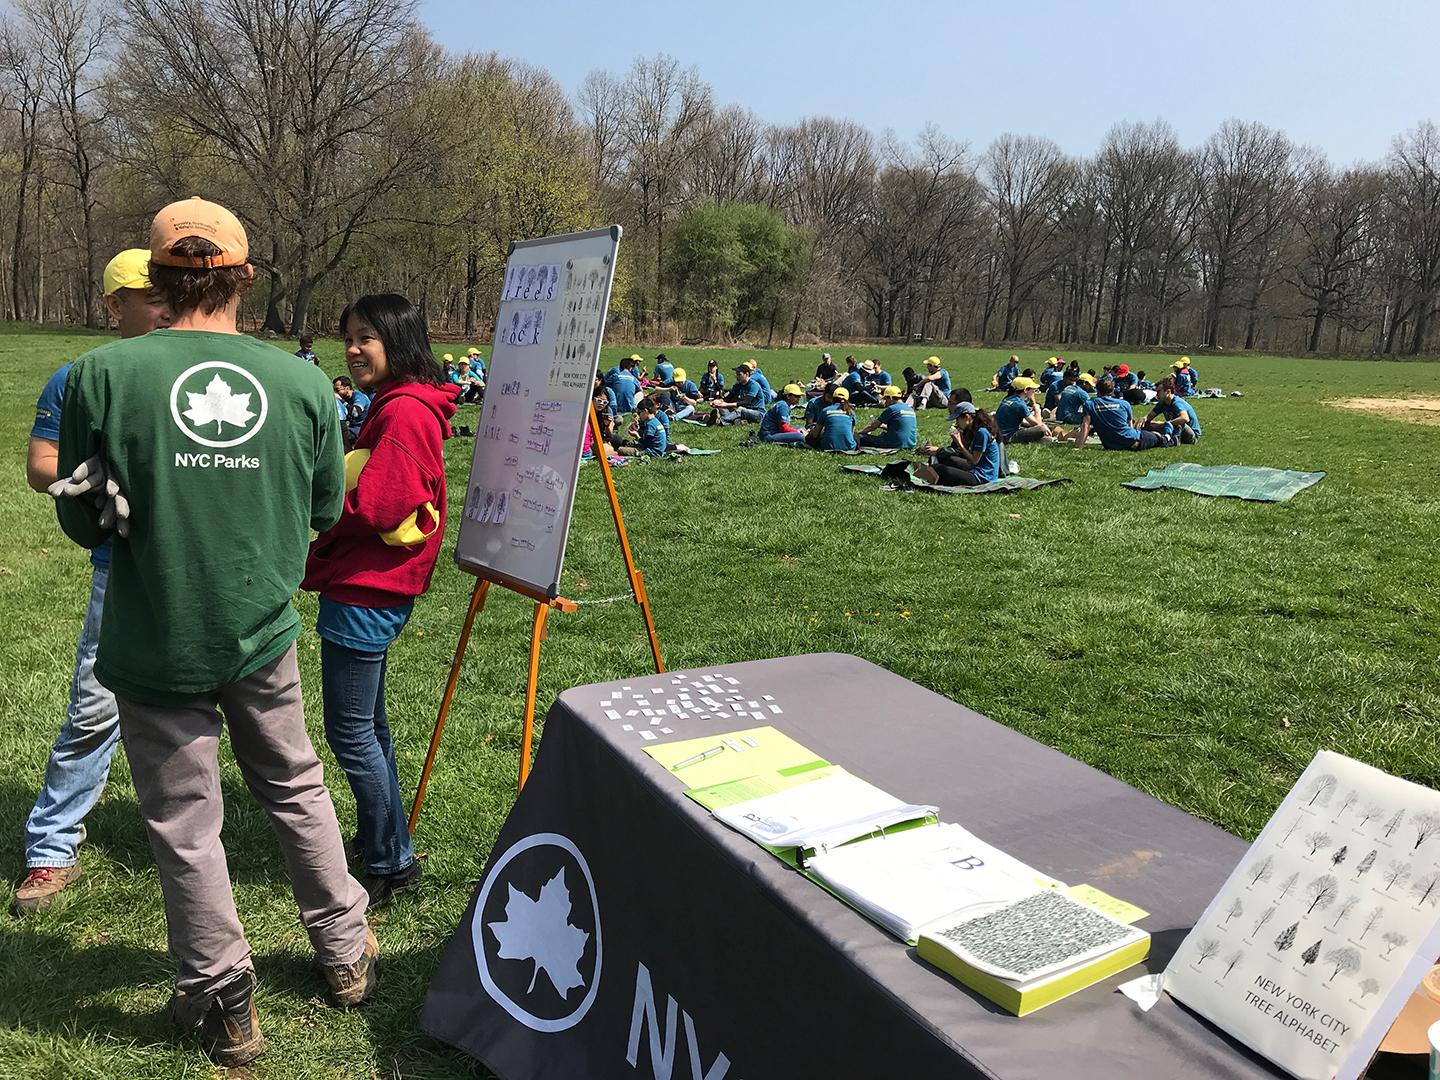 Sharing the  New York City Tree Alphabet  during a tree planting session with the NYC Parks Department in Pelham Bay Park, Bronx, NY, April 28, 2018.